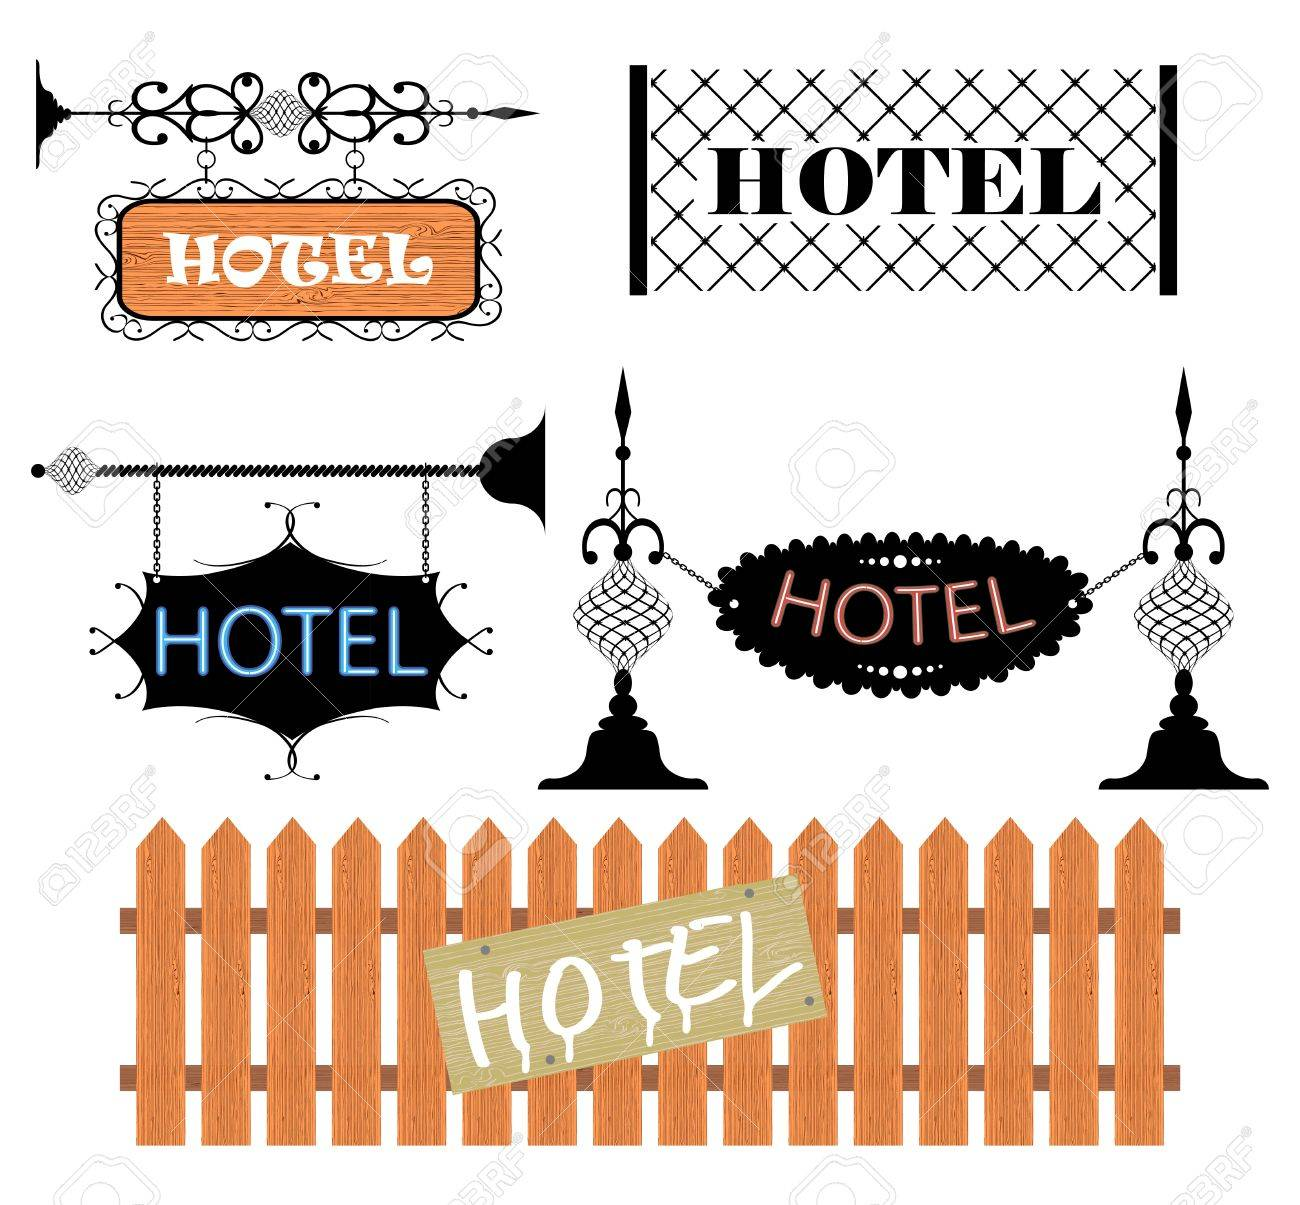 Wrought iron vintage signs and decor elements Stock Vector - 12927299